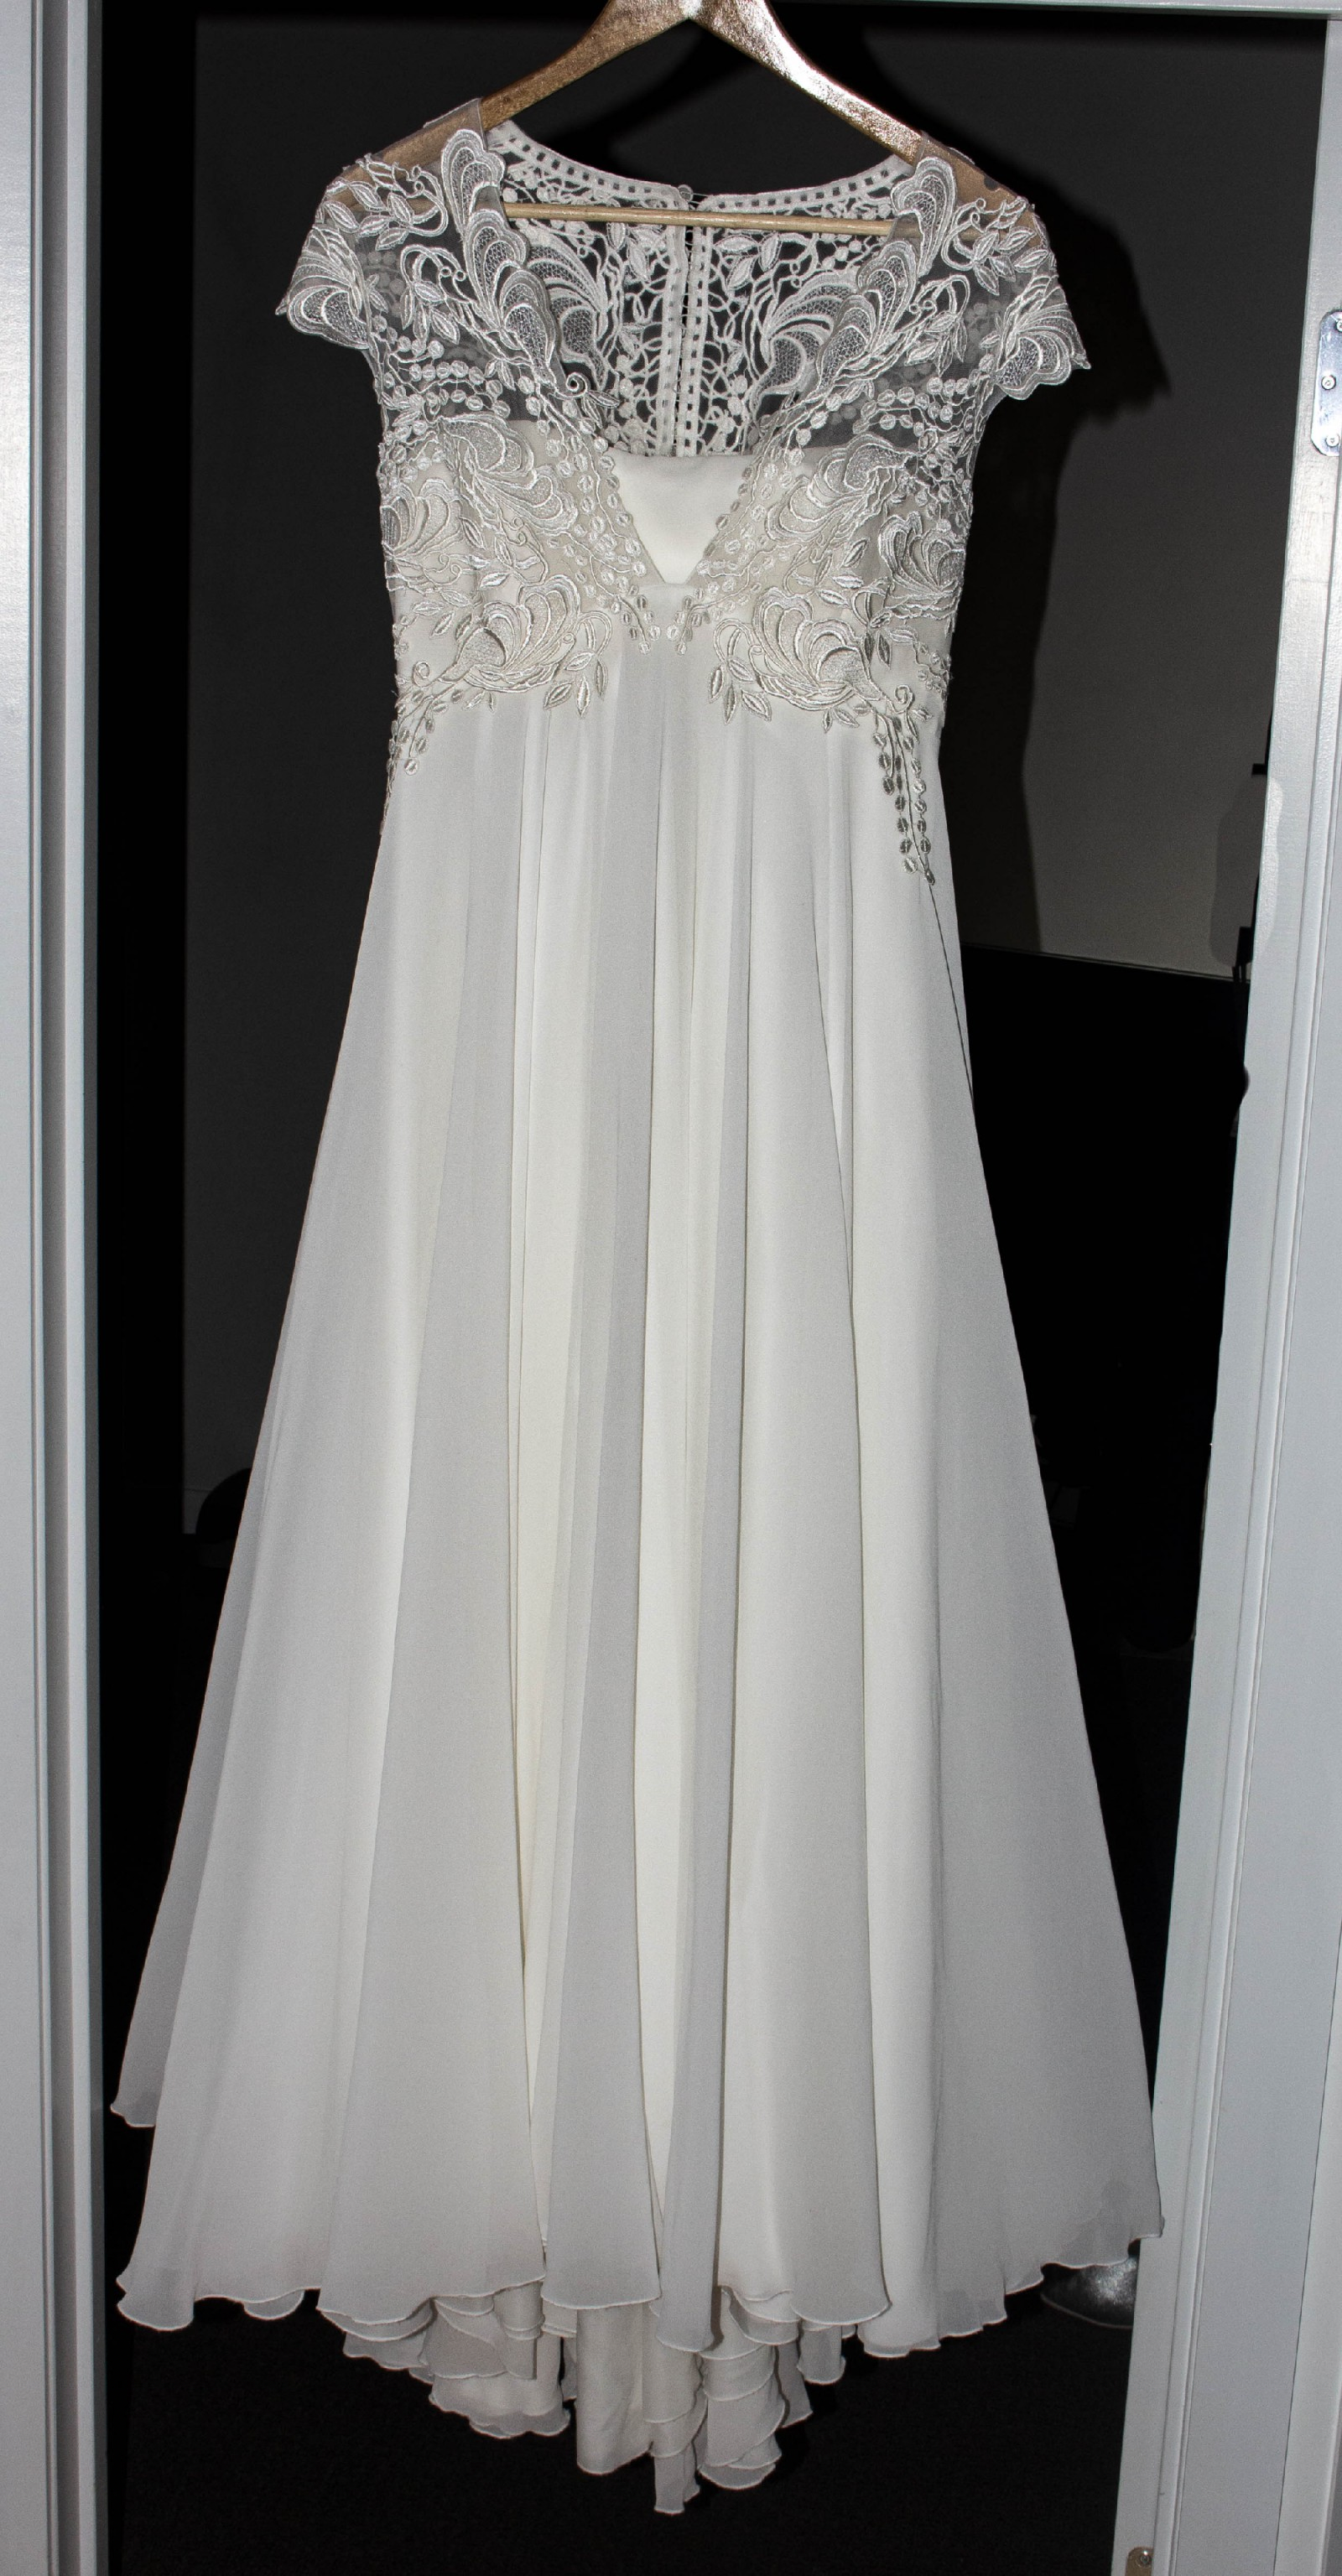 d08073d729b Ida Torez Banjo - 01025 Second Hand Wedding Dress on Sale 71% Off -  Stillwhite South Africa